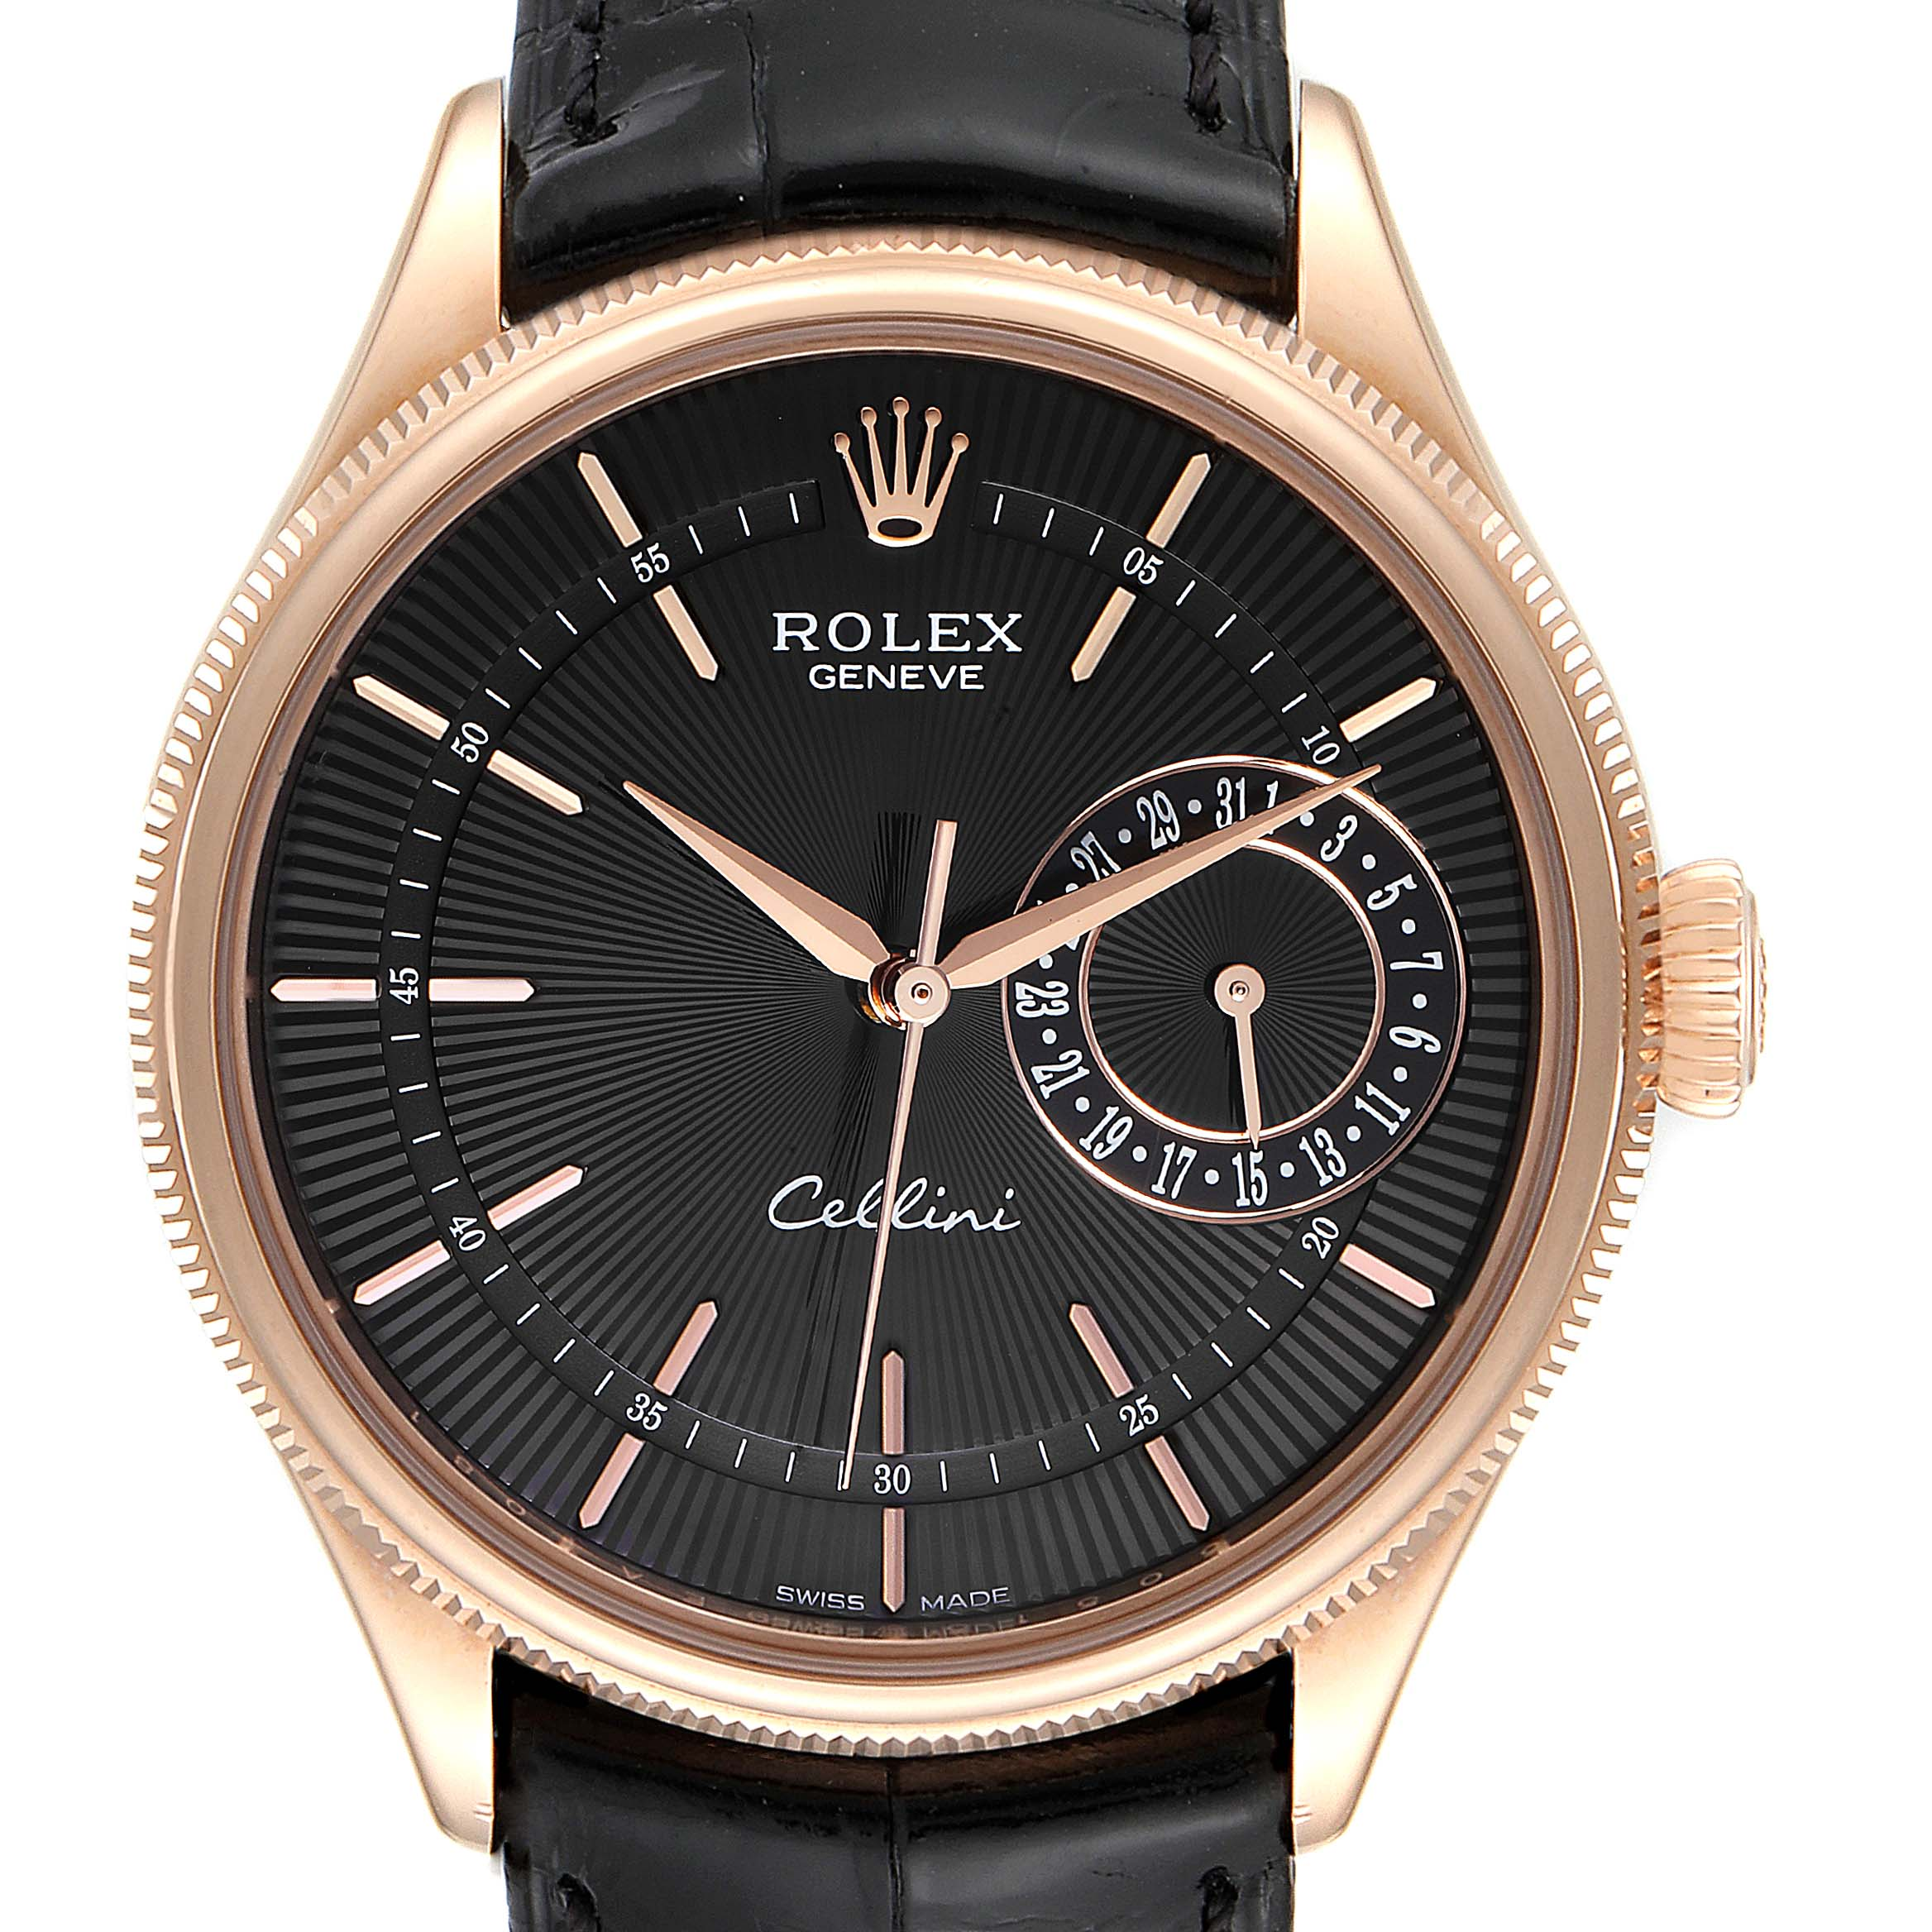 Photo of Rolex Cellini Date Everose Gold Black Dial Automatic Mens Watch 50515